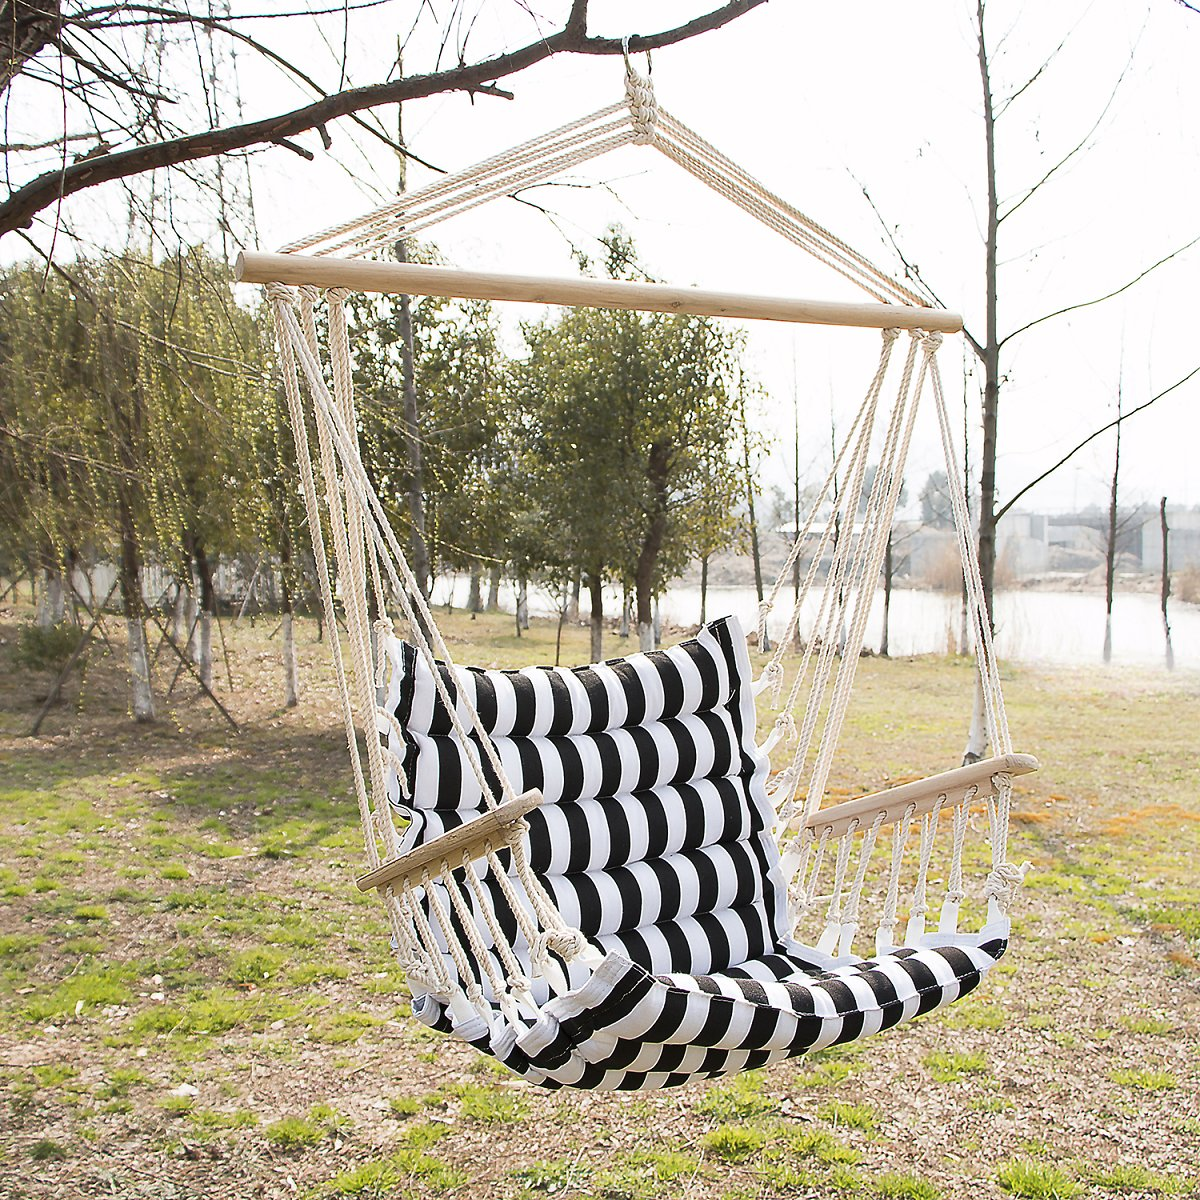 Patio Padded Cotton Hammock Hanging Rope Chair Indoor Outdoor Swing White and Black Strip